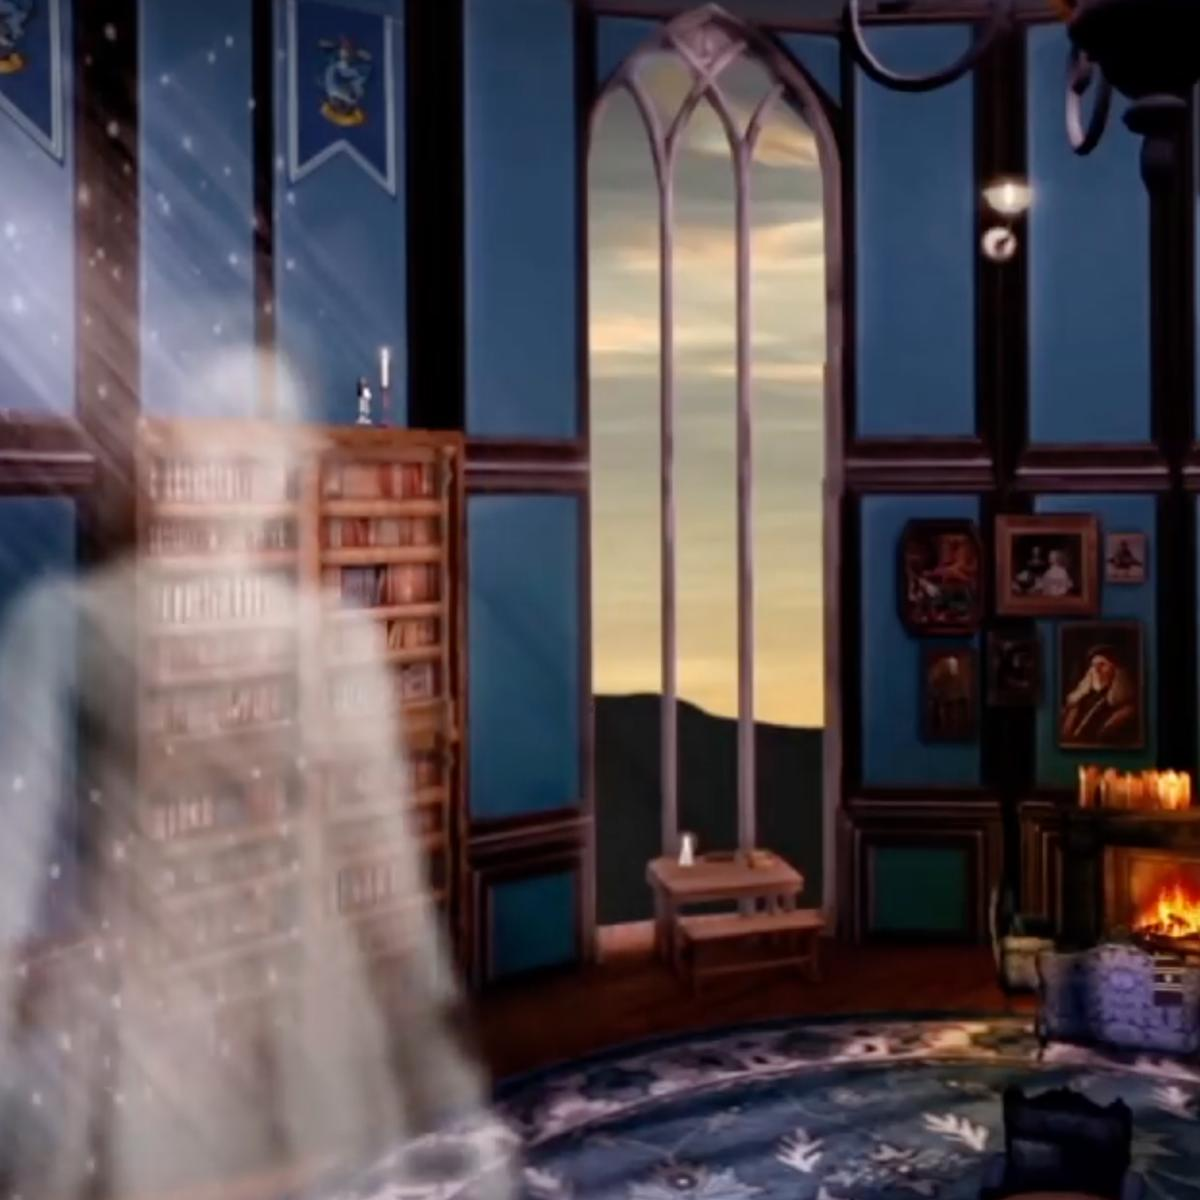 ASMR Rooms Ravenclaw common room from Harry Potter